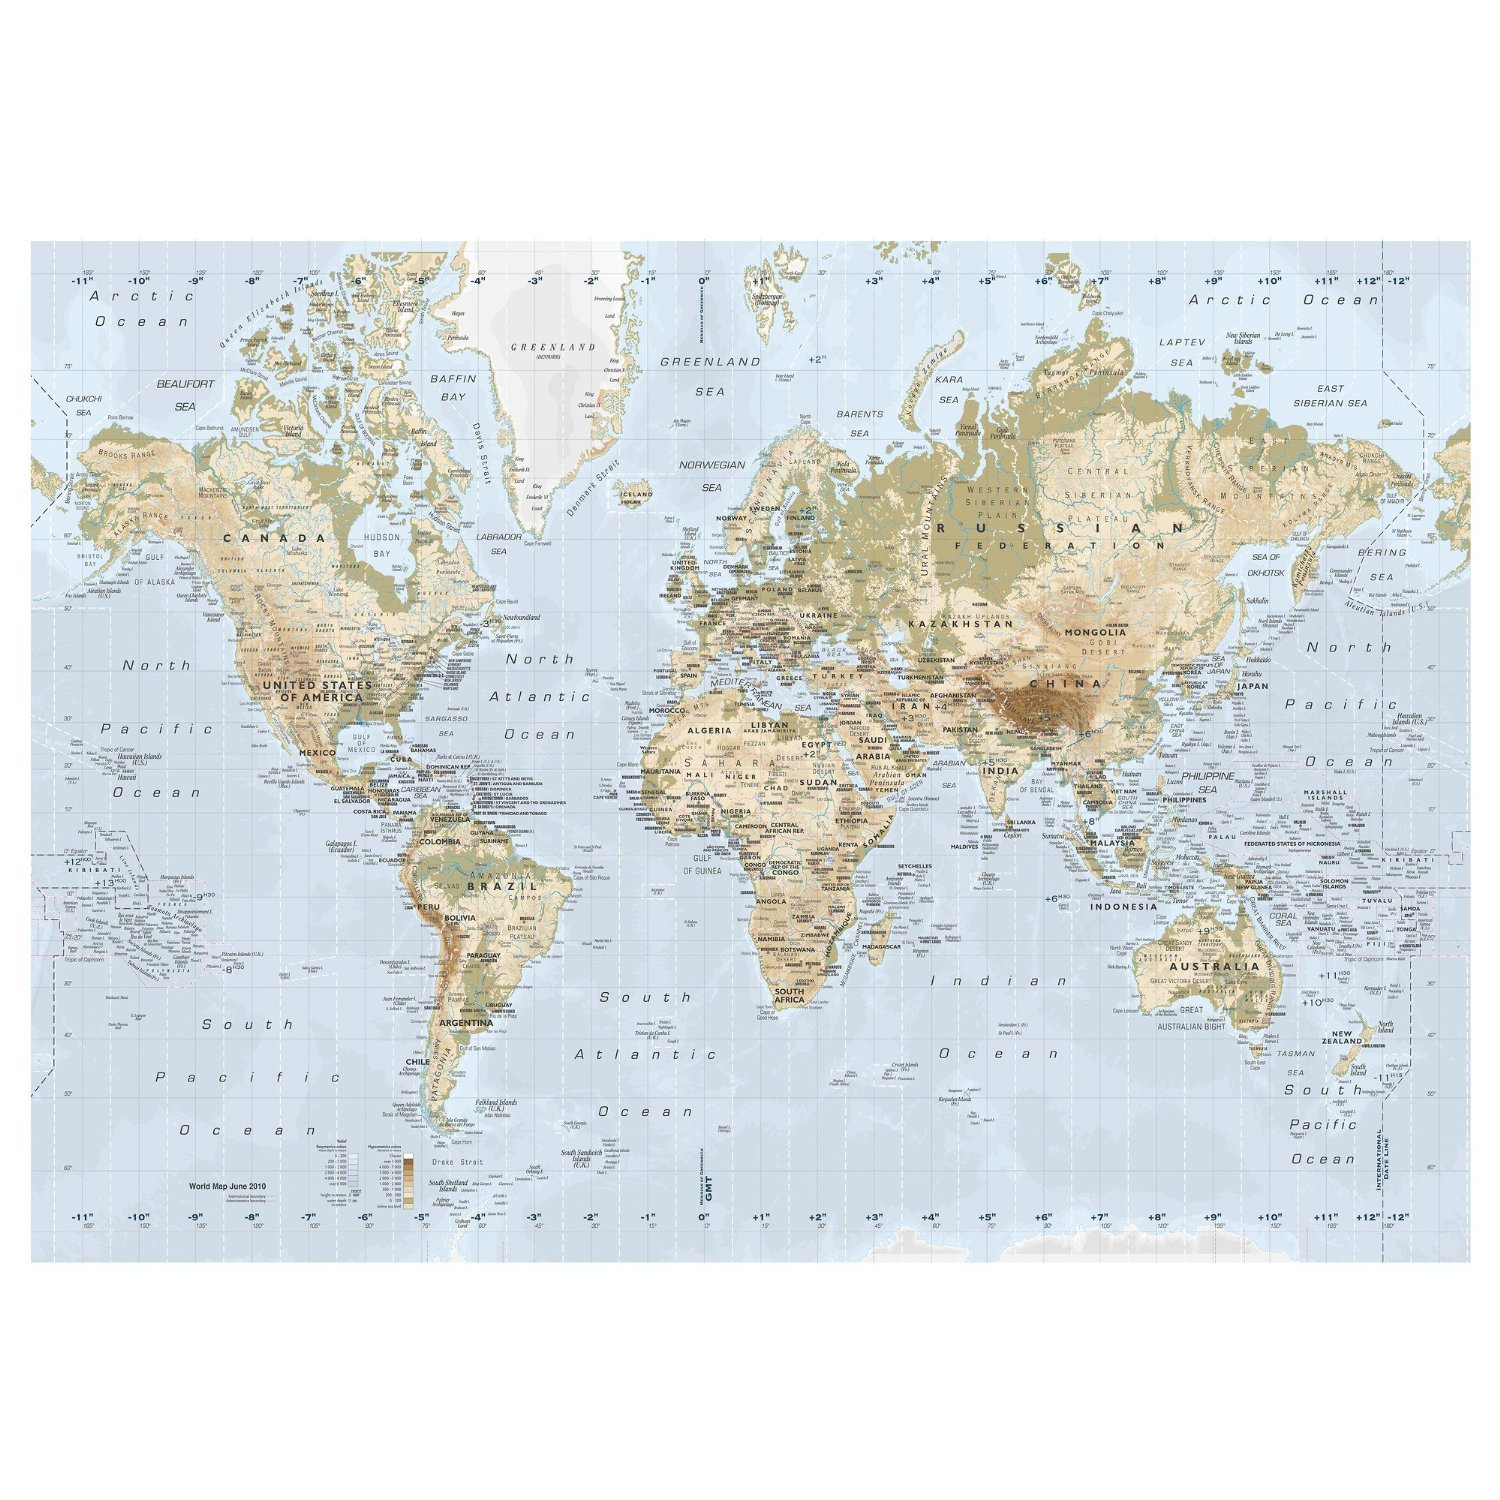 New ikea premiar world map picture with framecanvas large 55 x 78 new ikea premiar world map picture with framecanvas large 55 x 78 inches amazon kitchen home gumiabroncs